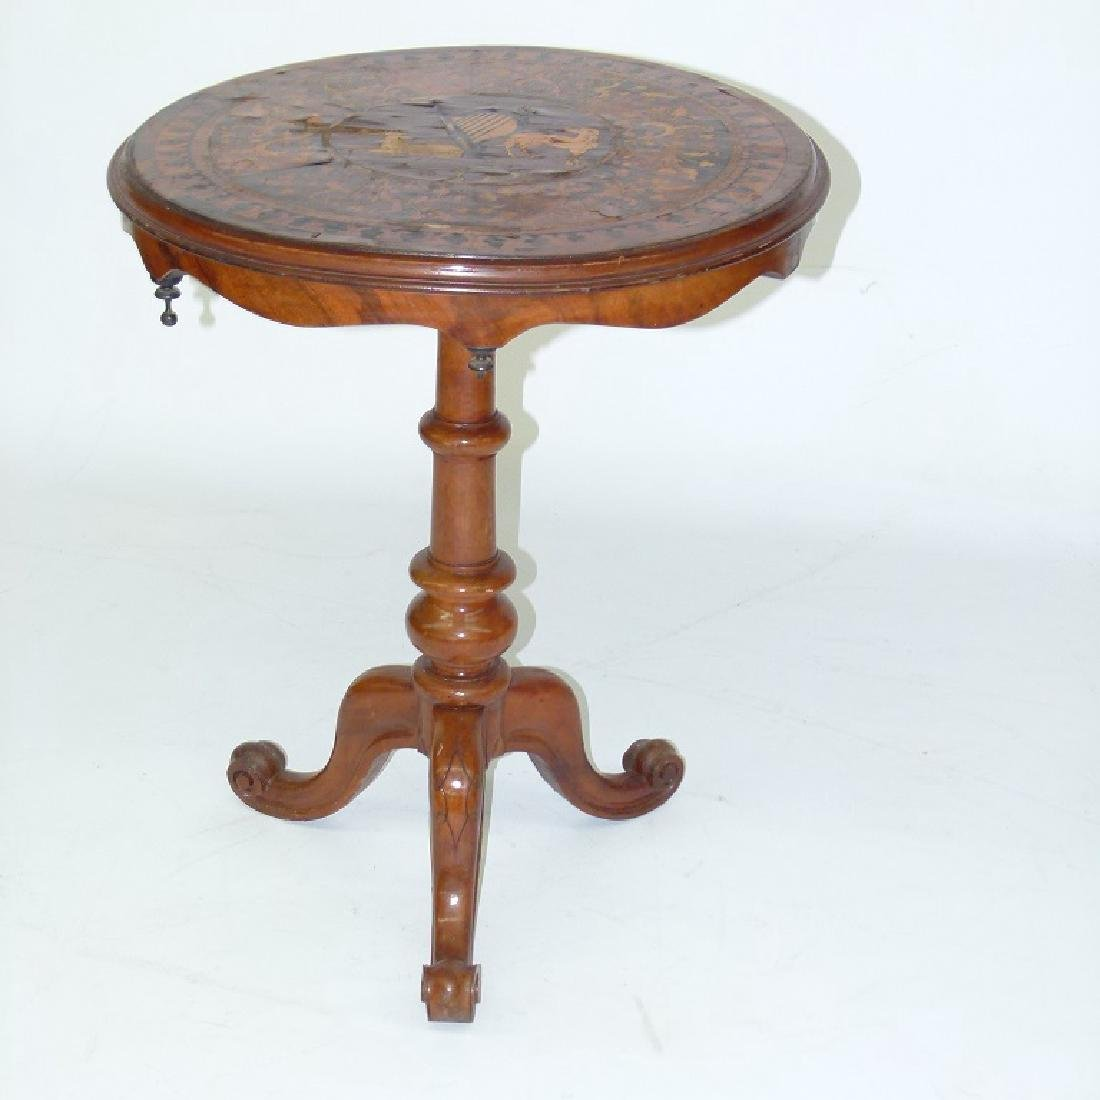 IRISH VICTORIAN INLAID WALNUT OCCASIONAL TABLE, 19TH C.